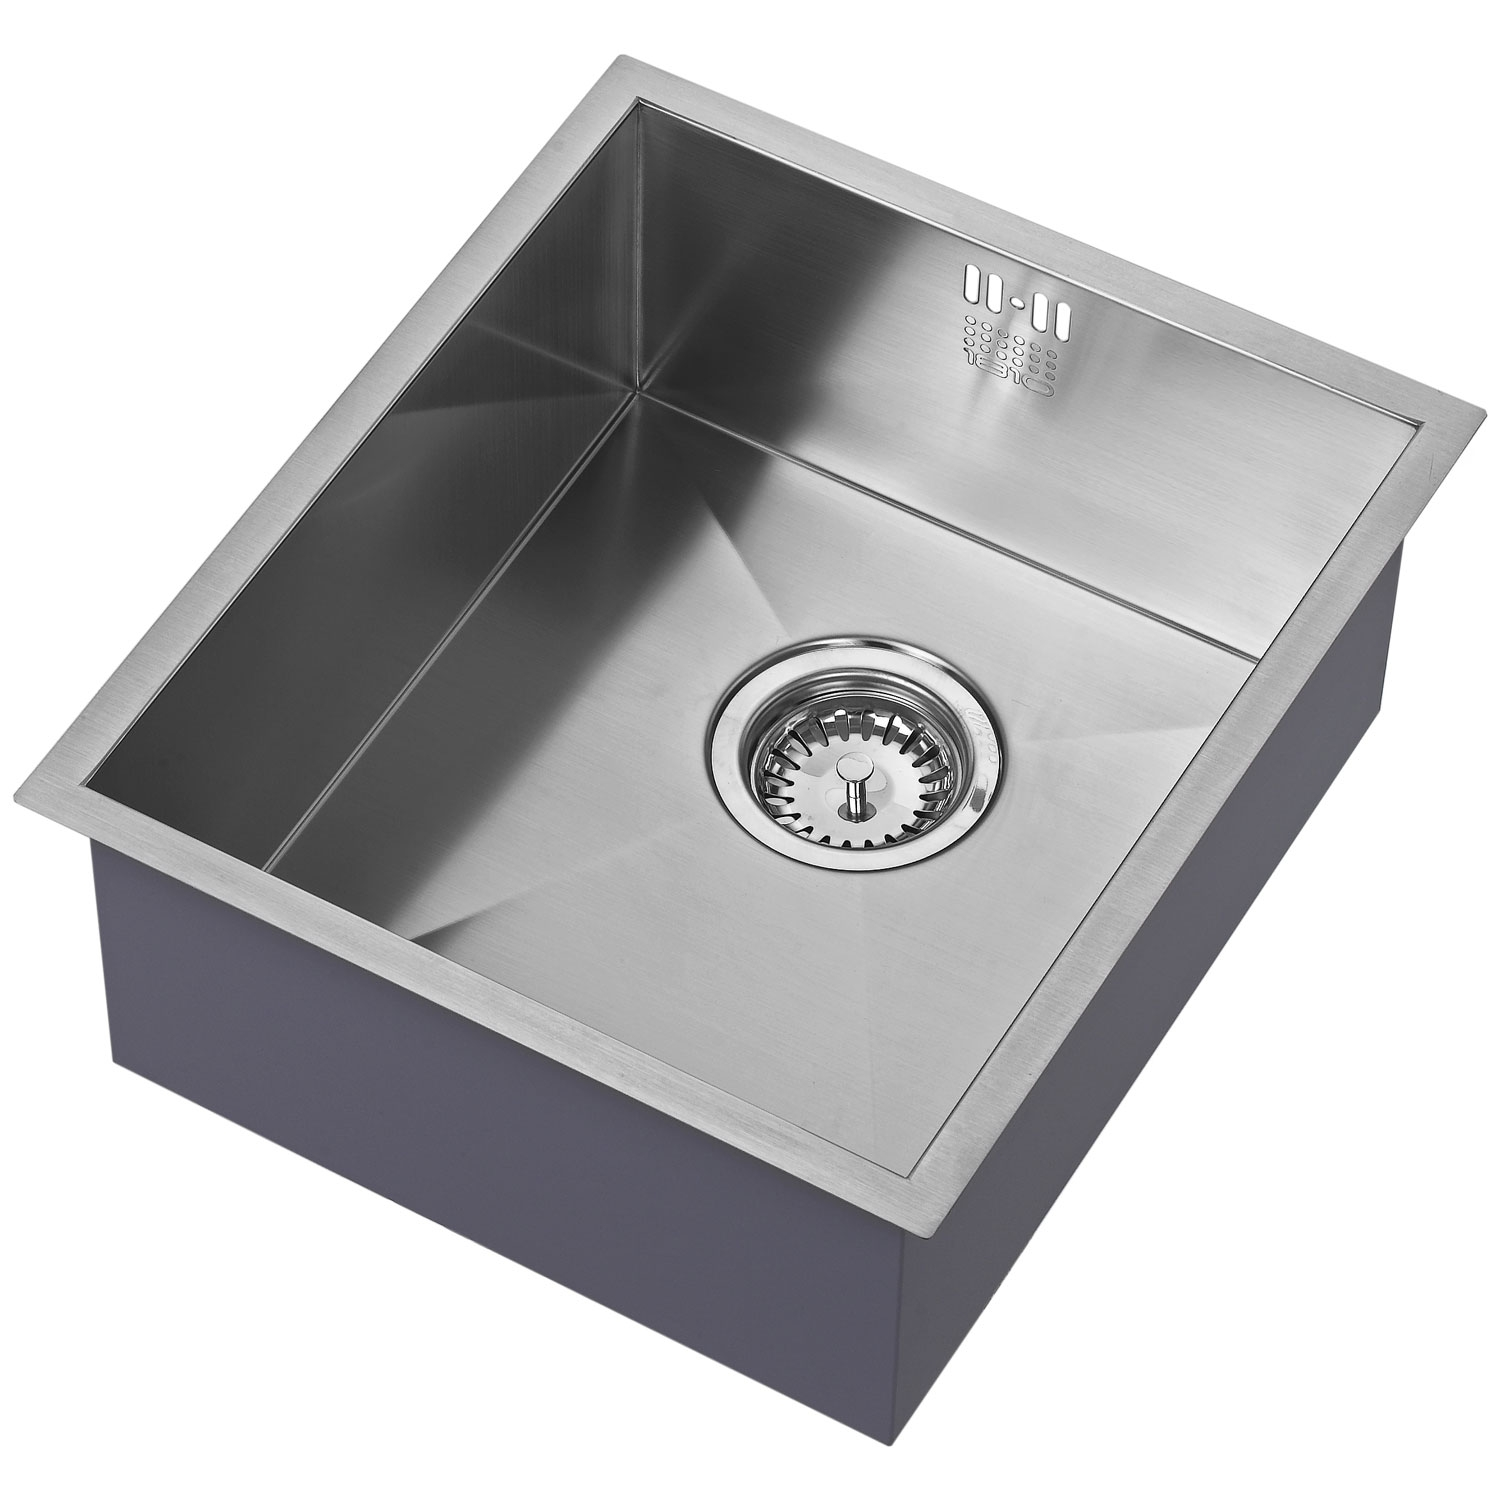 The 1810 Company Zenuno 340U 1.0 Bowl Kitchen Sink - Stainless Steel-0